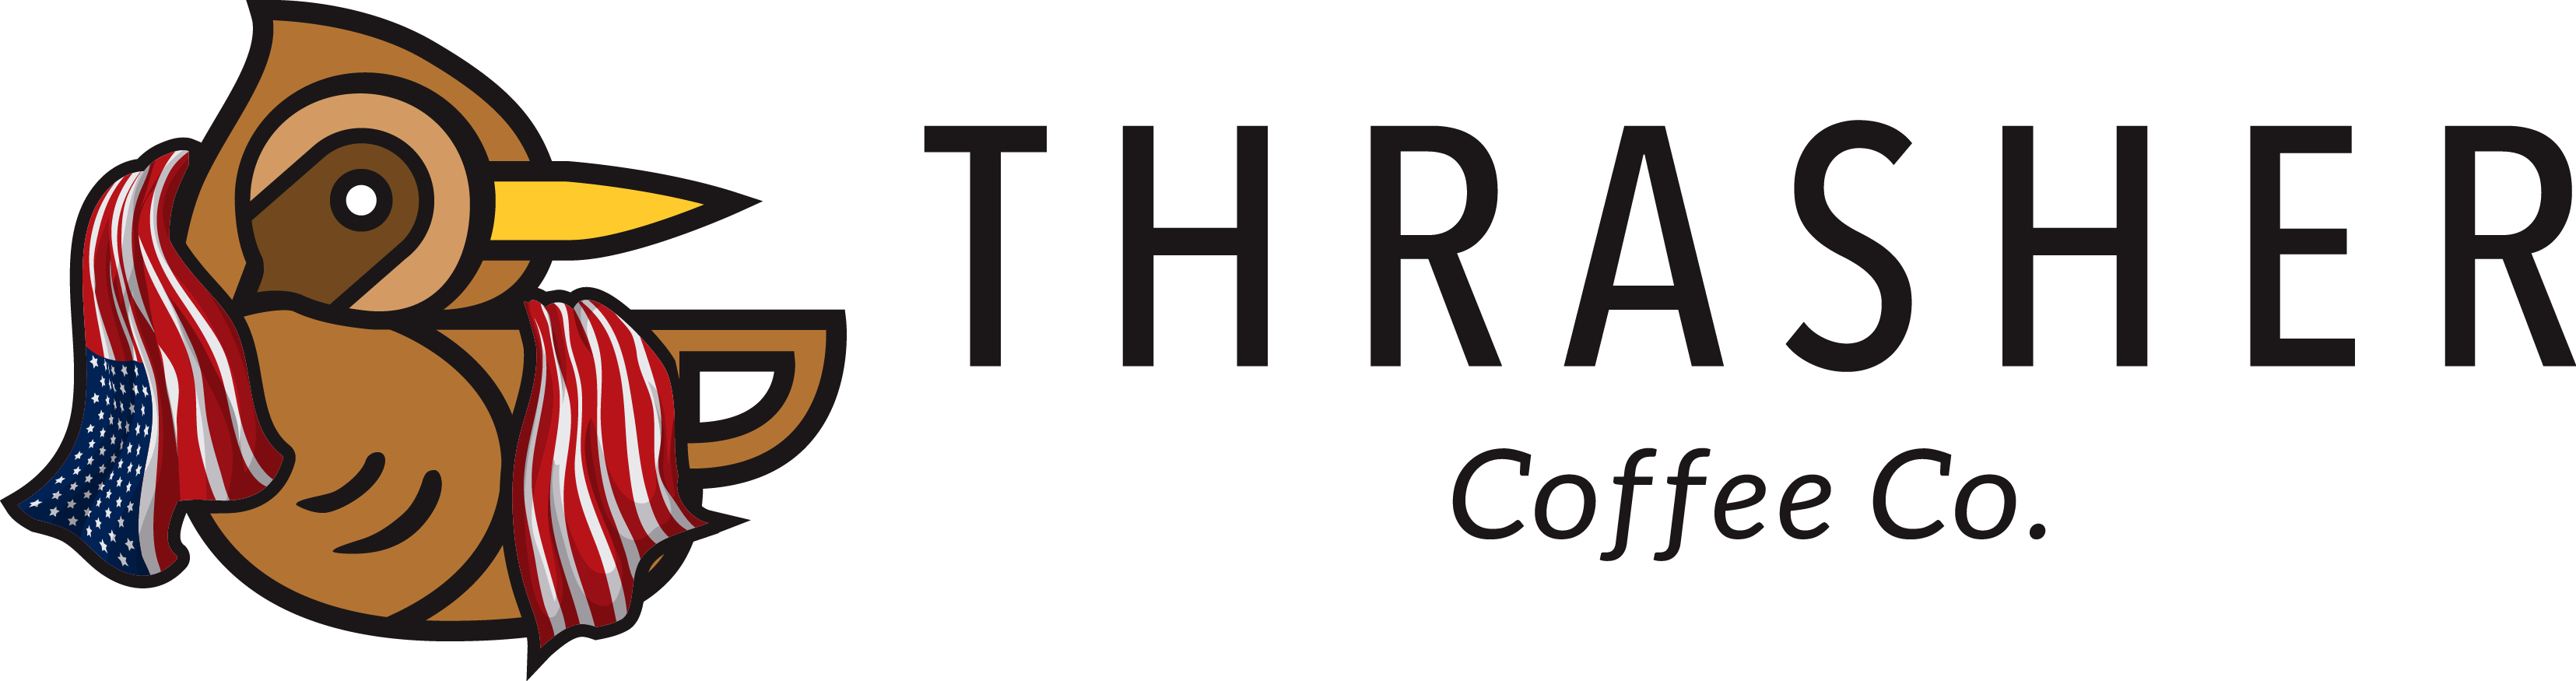 Get 10% Off For Entire Store At Thrasher Coffee